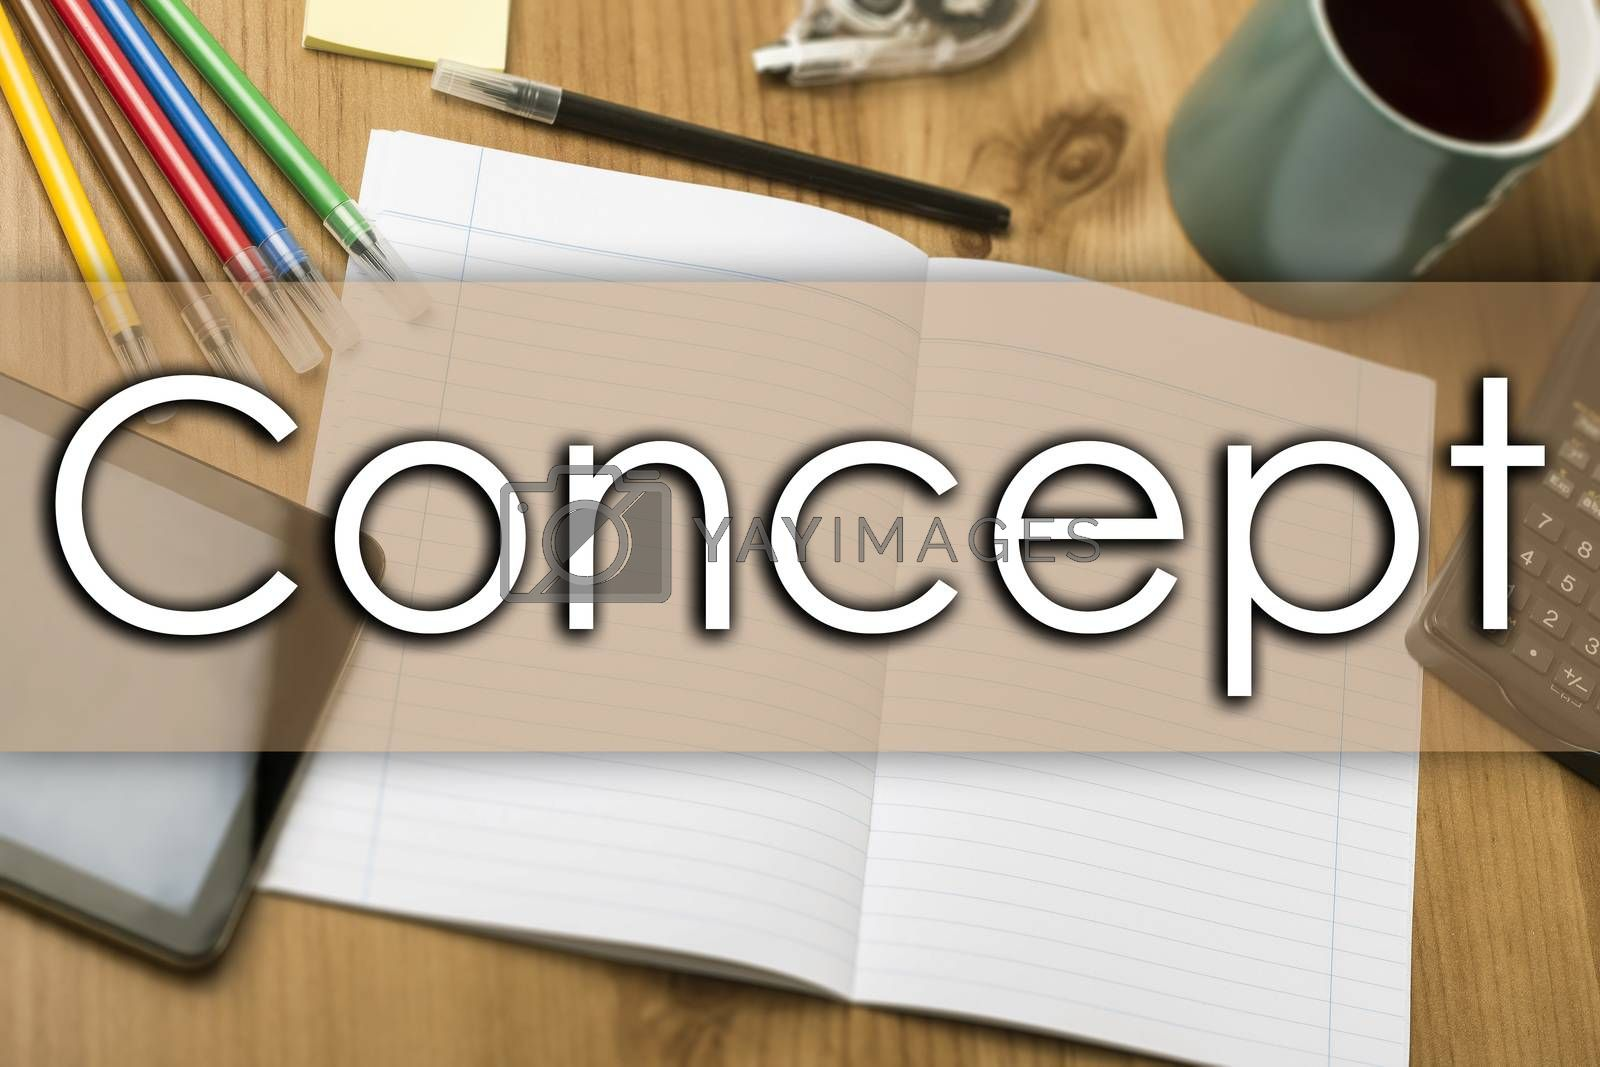 Concept - business concept with text by zsirosistvan